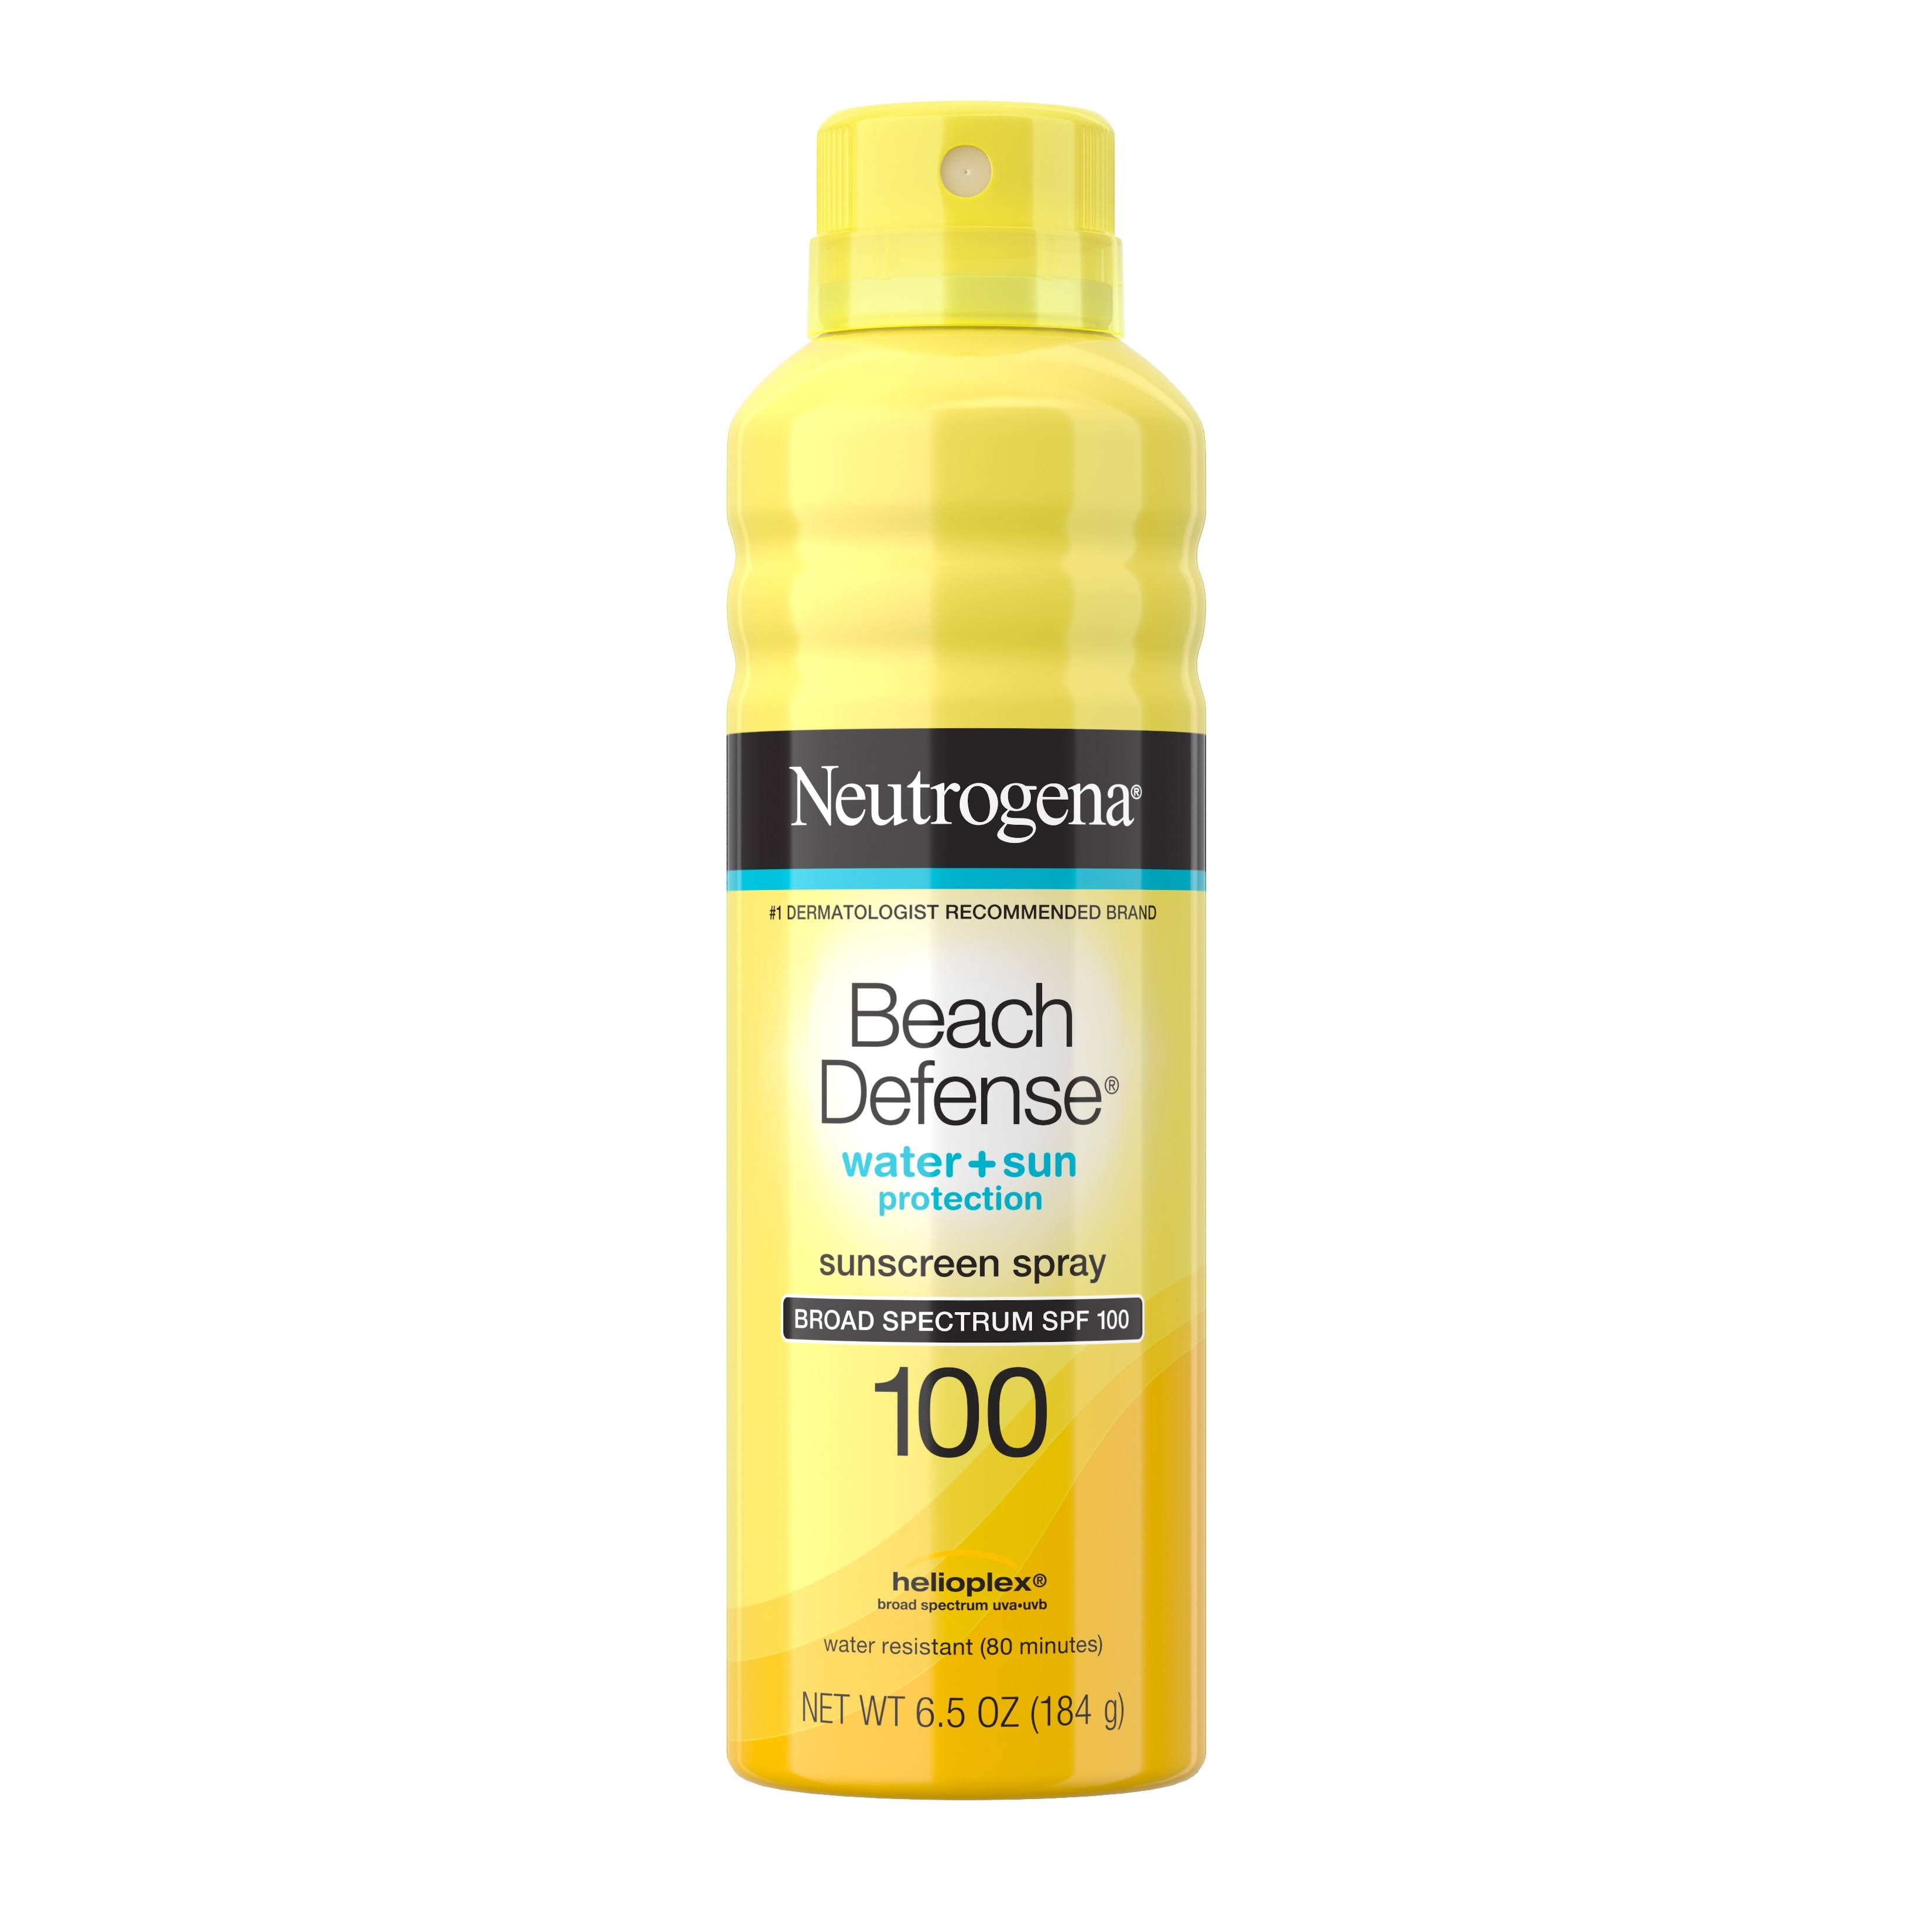 Neutrogena Beach Defense SPF100 Sunscreen Spray - 6.5oz